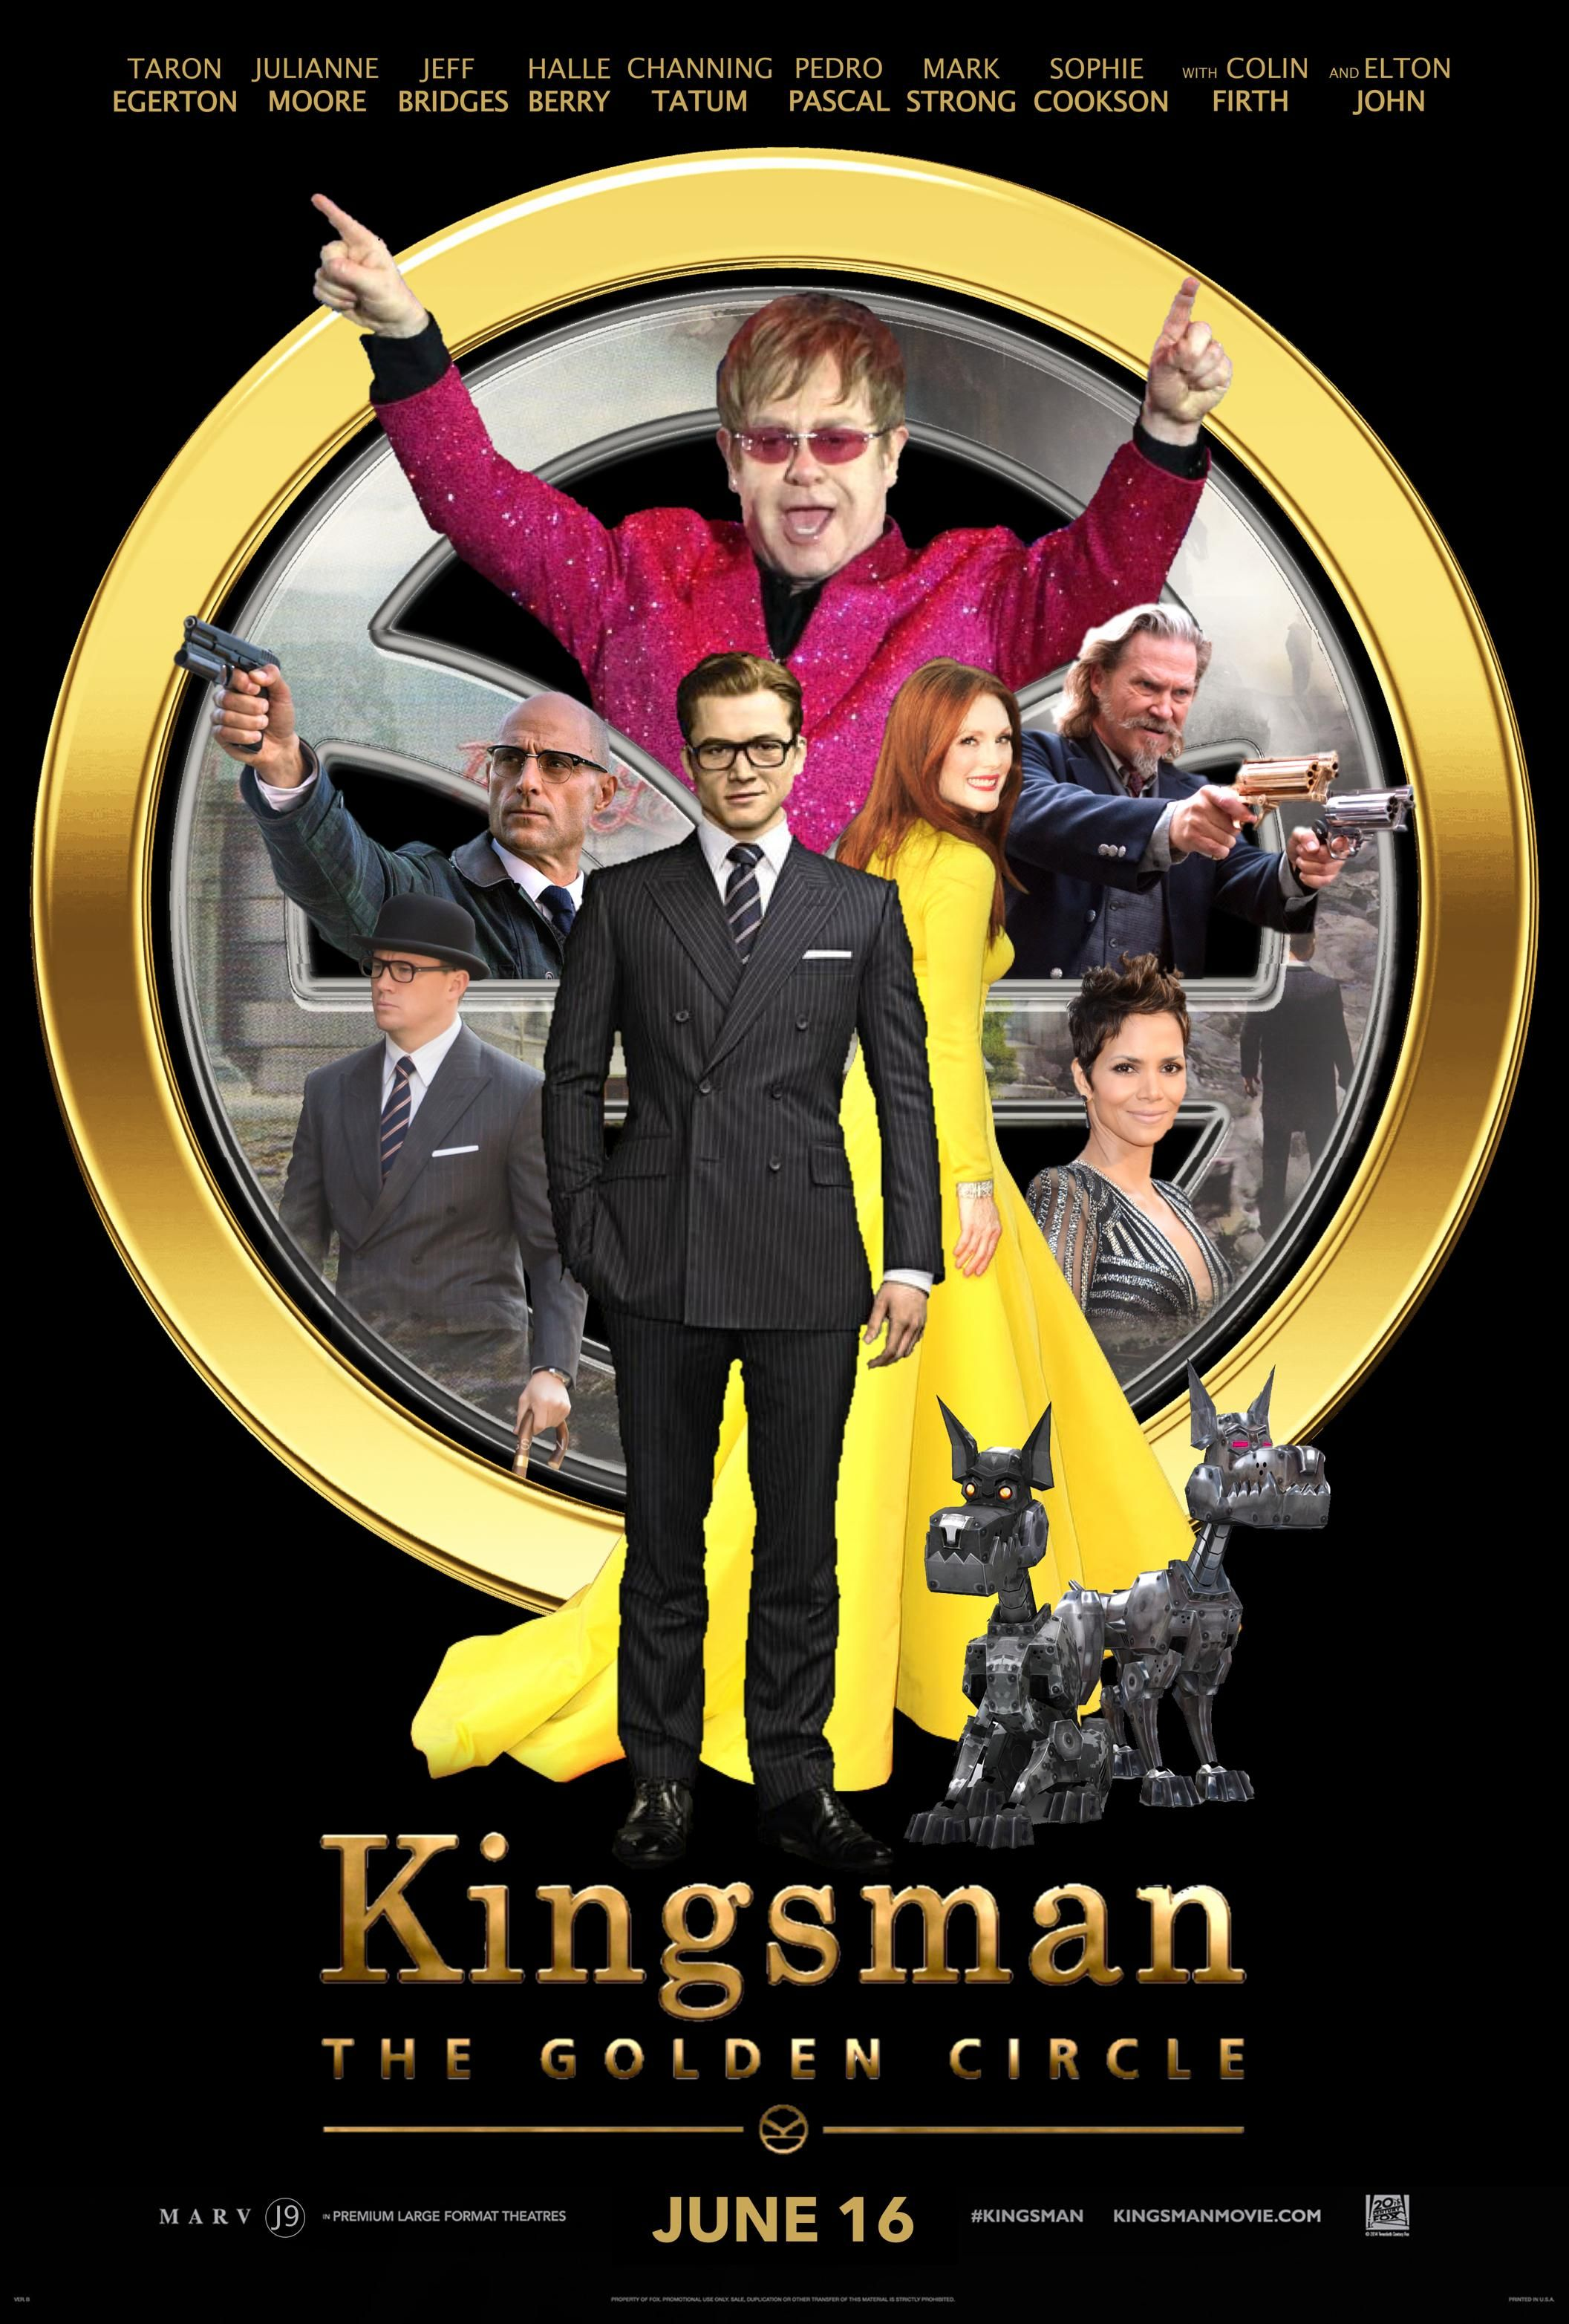 Kingsmen The Golden Circle 2017 2 Kingsman Kingsman The Golden Circle Best Action Movies